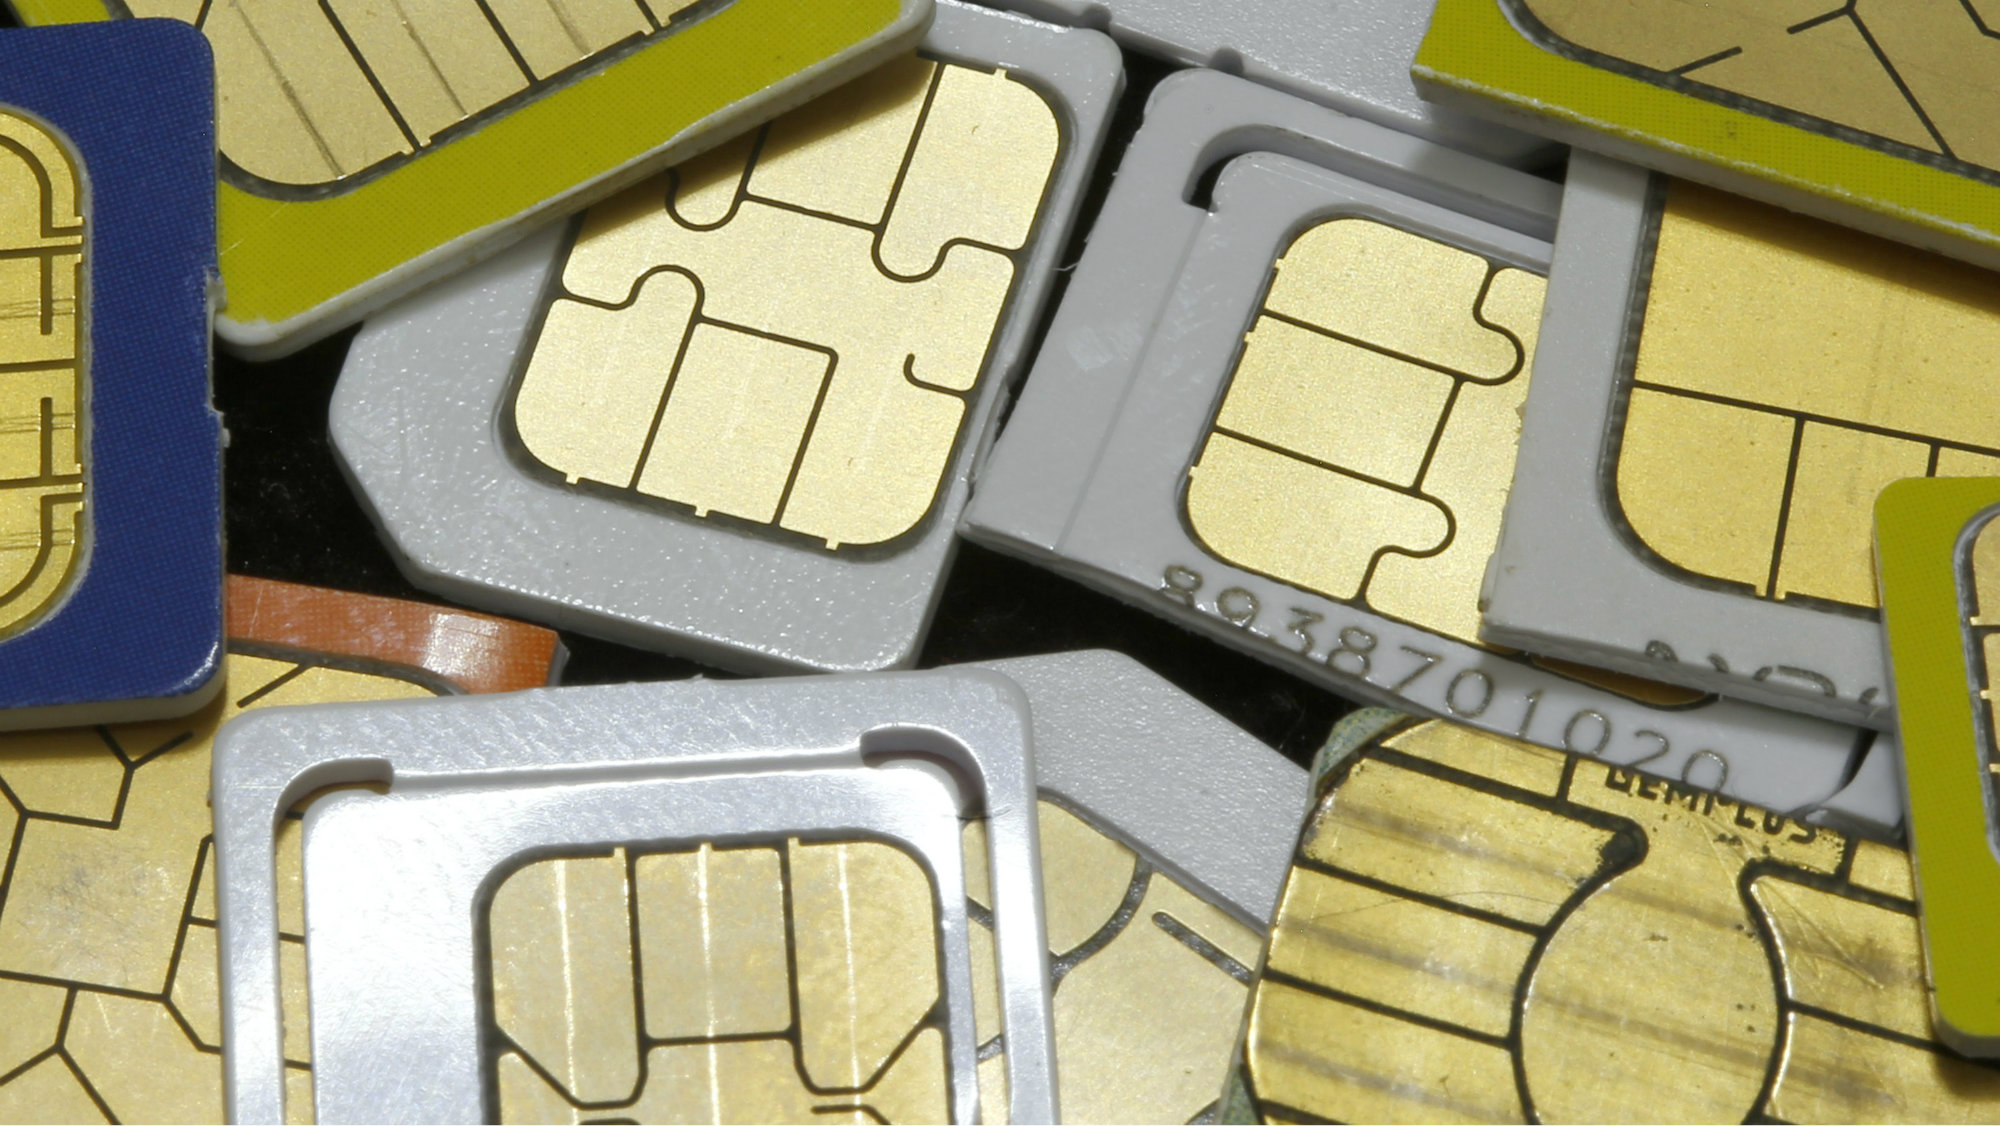 SIM cards lie on a table in this photo illustration taken in Sarajevo February 24, 2015. Franco-Dutch technology firm Gemalto, the world's biggest maker of phone SIM cards, will not pursue any legal action against government agencies it says are probably behind a large-scale hacking attempt as chances of success are nearly nonexistent, CEO Olivier Piou said February 25, 2015. Gemalto makes smart chips for mobile phones, bank cards and biometric passports and counts Verizon , AT&T Inc. and Vodafone among its 450 wireless network provider customers around the world. Picture taken Febryary 24. REUTERS/Dado Ruvic (BOSNIA AND HERZEGOVINA - Tags: BUSINESS SCIENCE TECHNOLOGY CRIME LAW TPX IMAGES OF THE DAY)